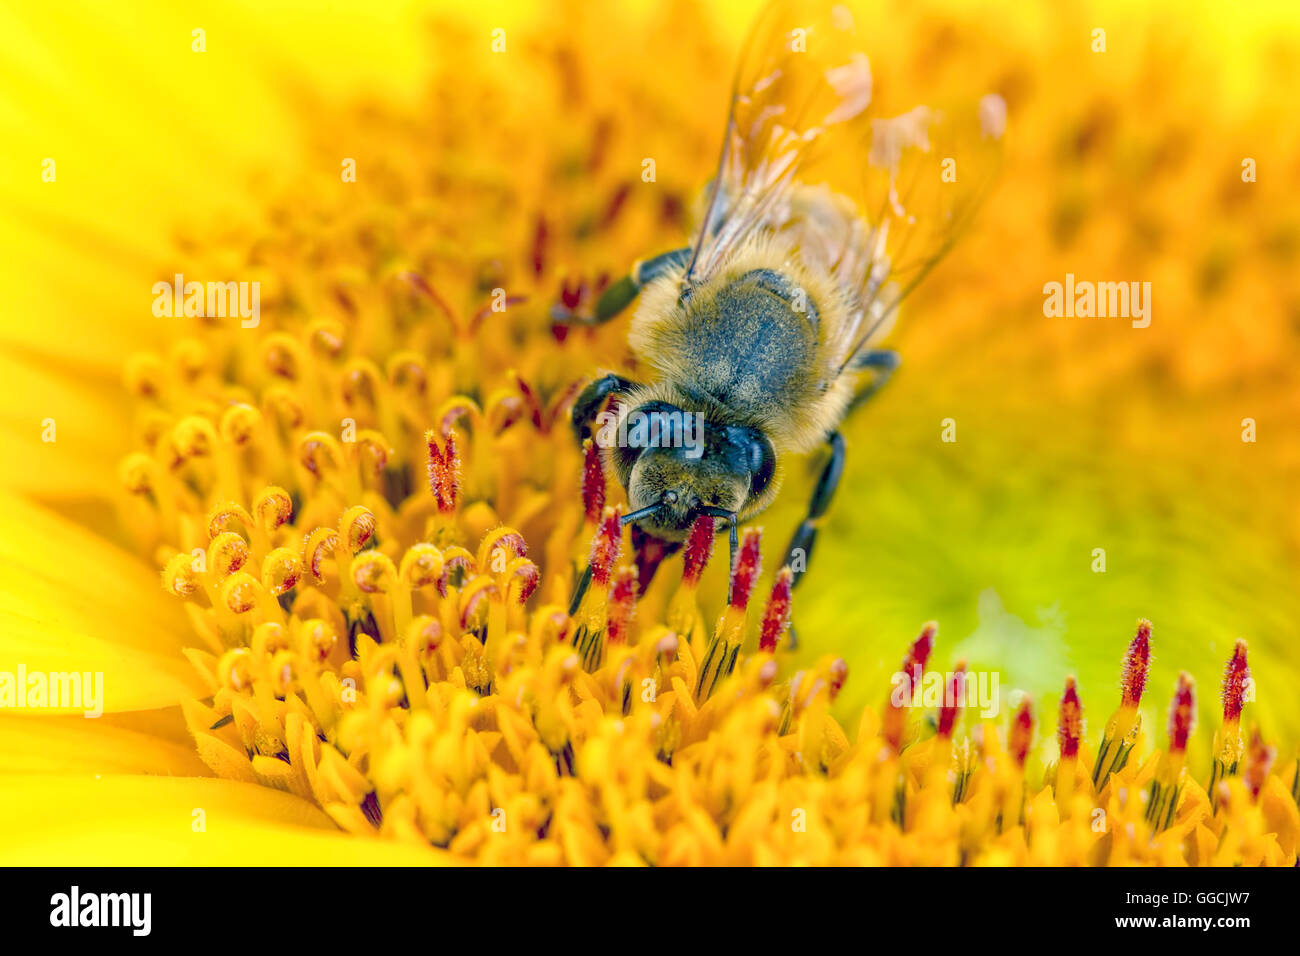 Macro of bee on flower. - Stock Image